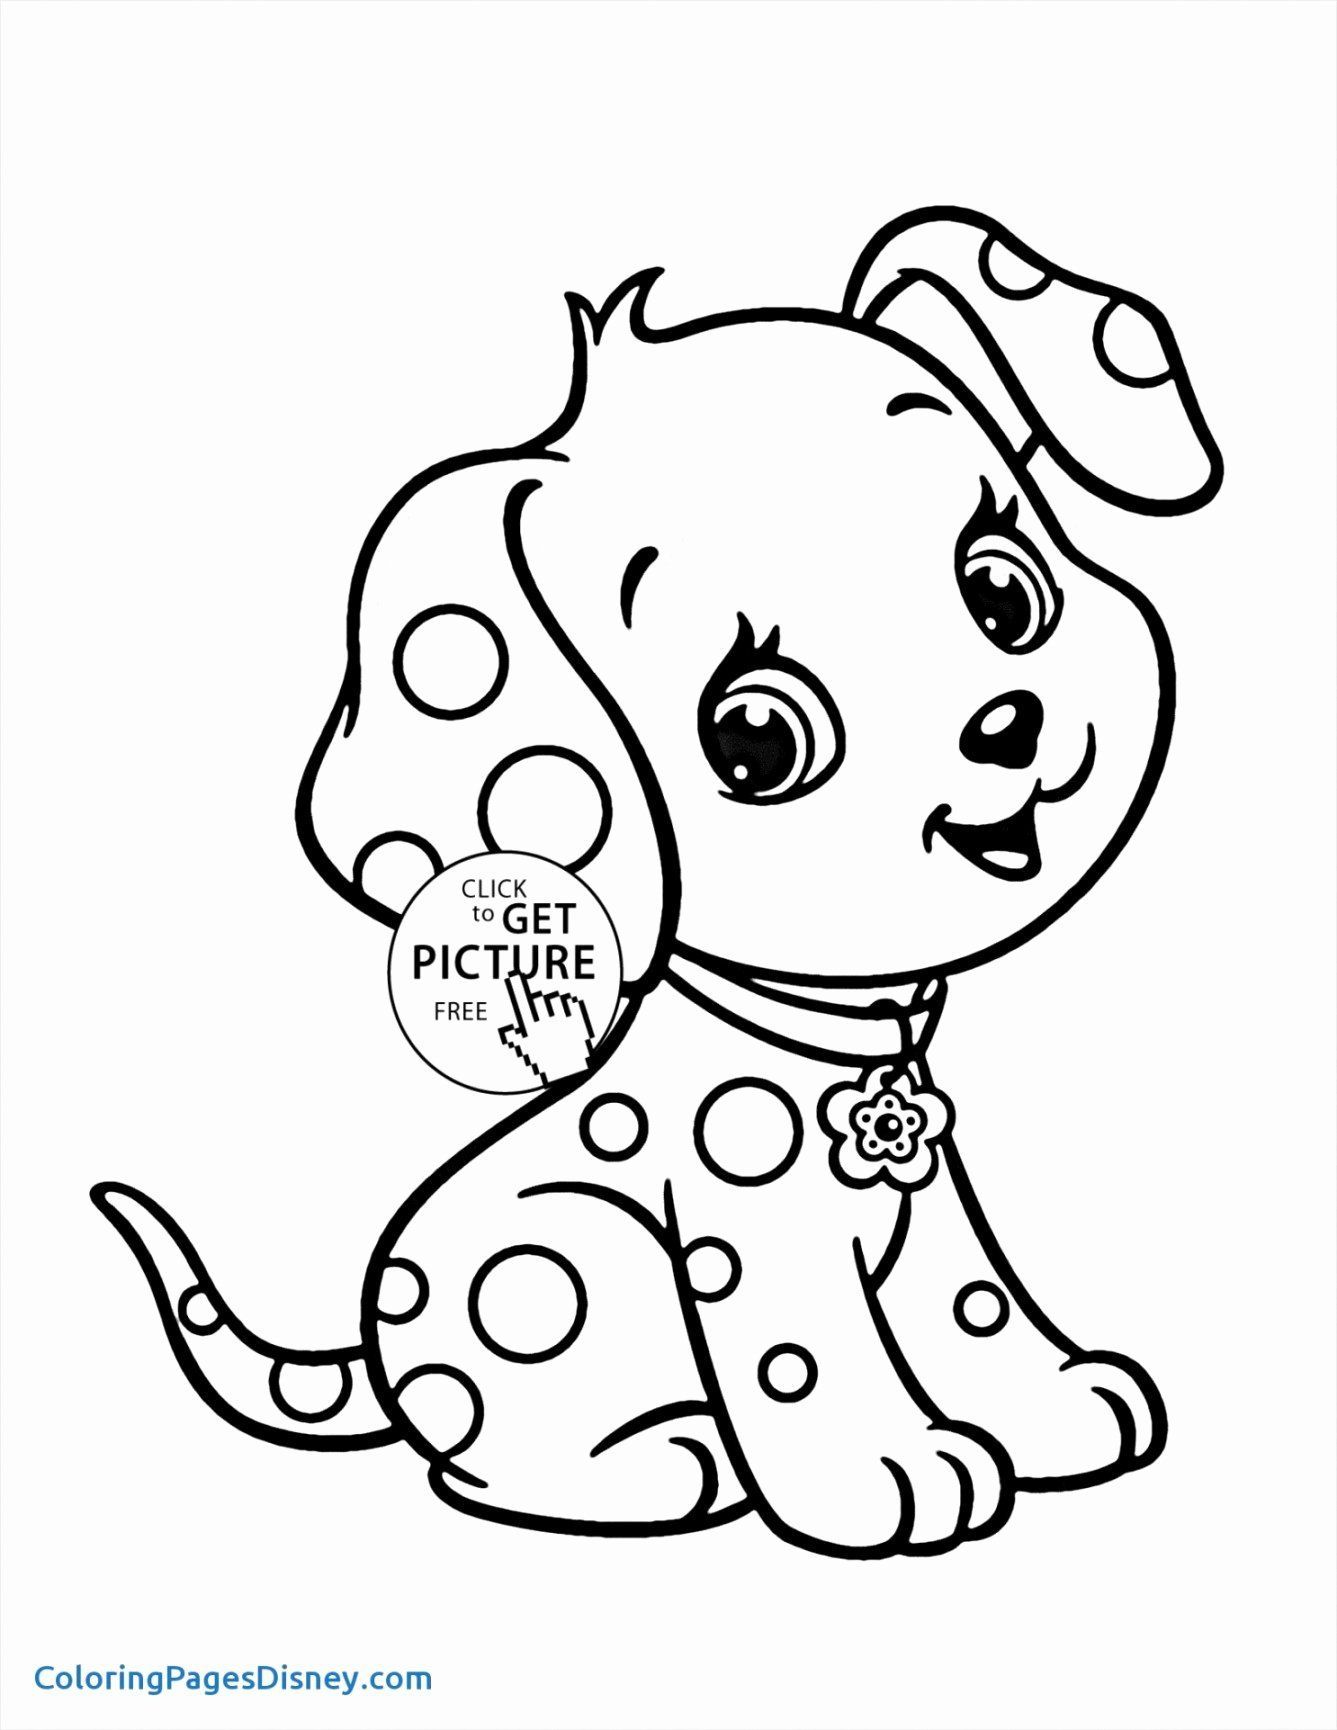 Hello Kitty Coloring Pages Inspirational Coloring Pages Top Beautiful Hello Kitty Coloring Li Unicorn Coloring Pages Animal Coloring Pages Puppy Coloring Pages